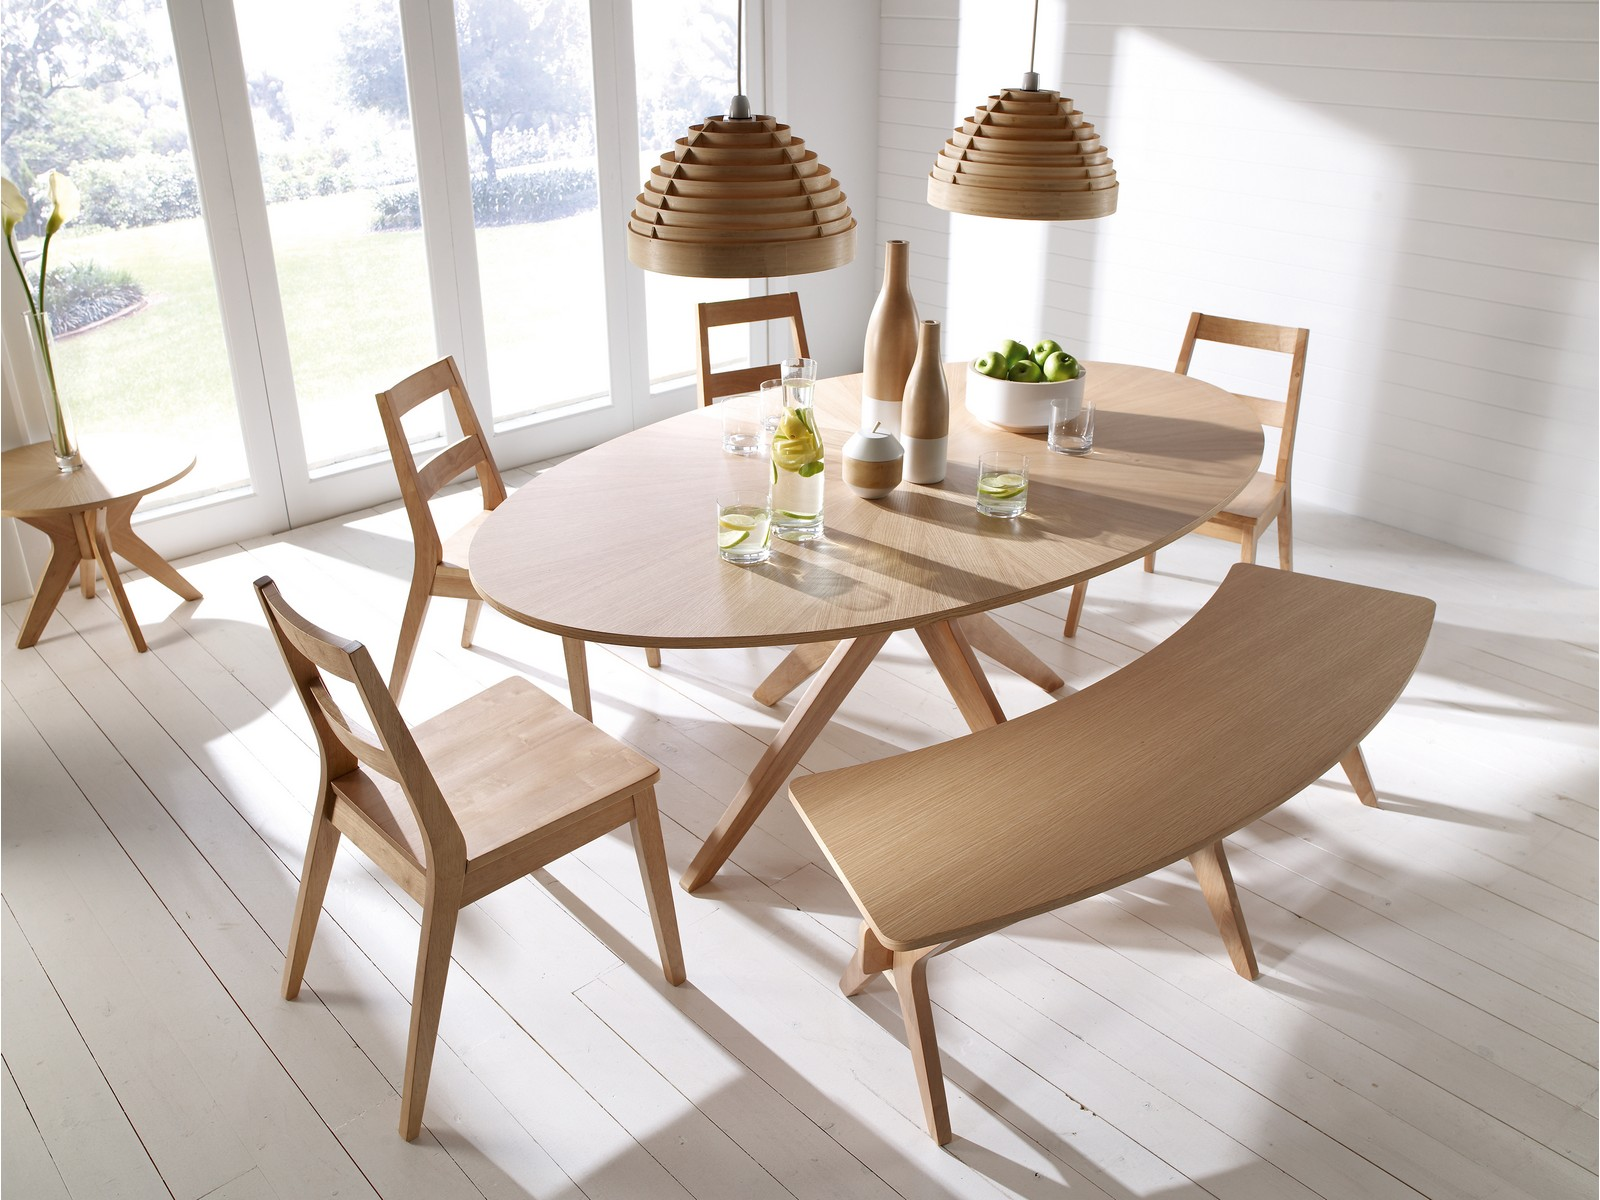 Malmo Scandinavian Style Dining Furniture Tables Chairs